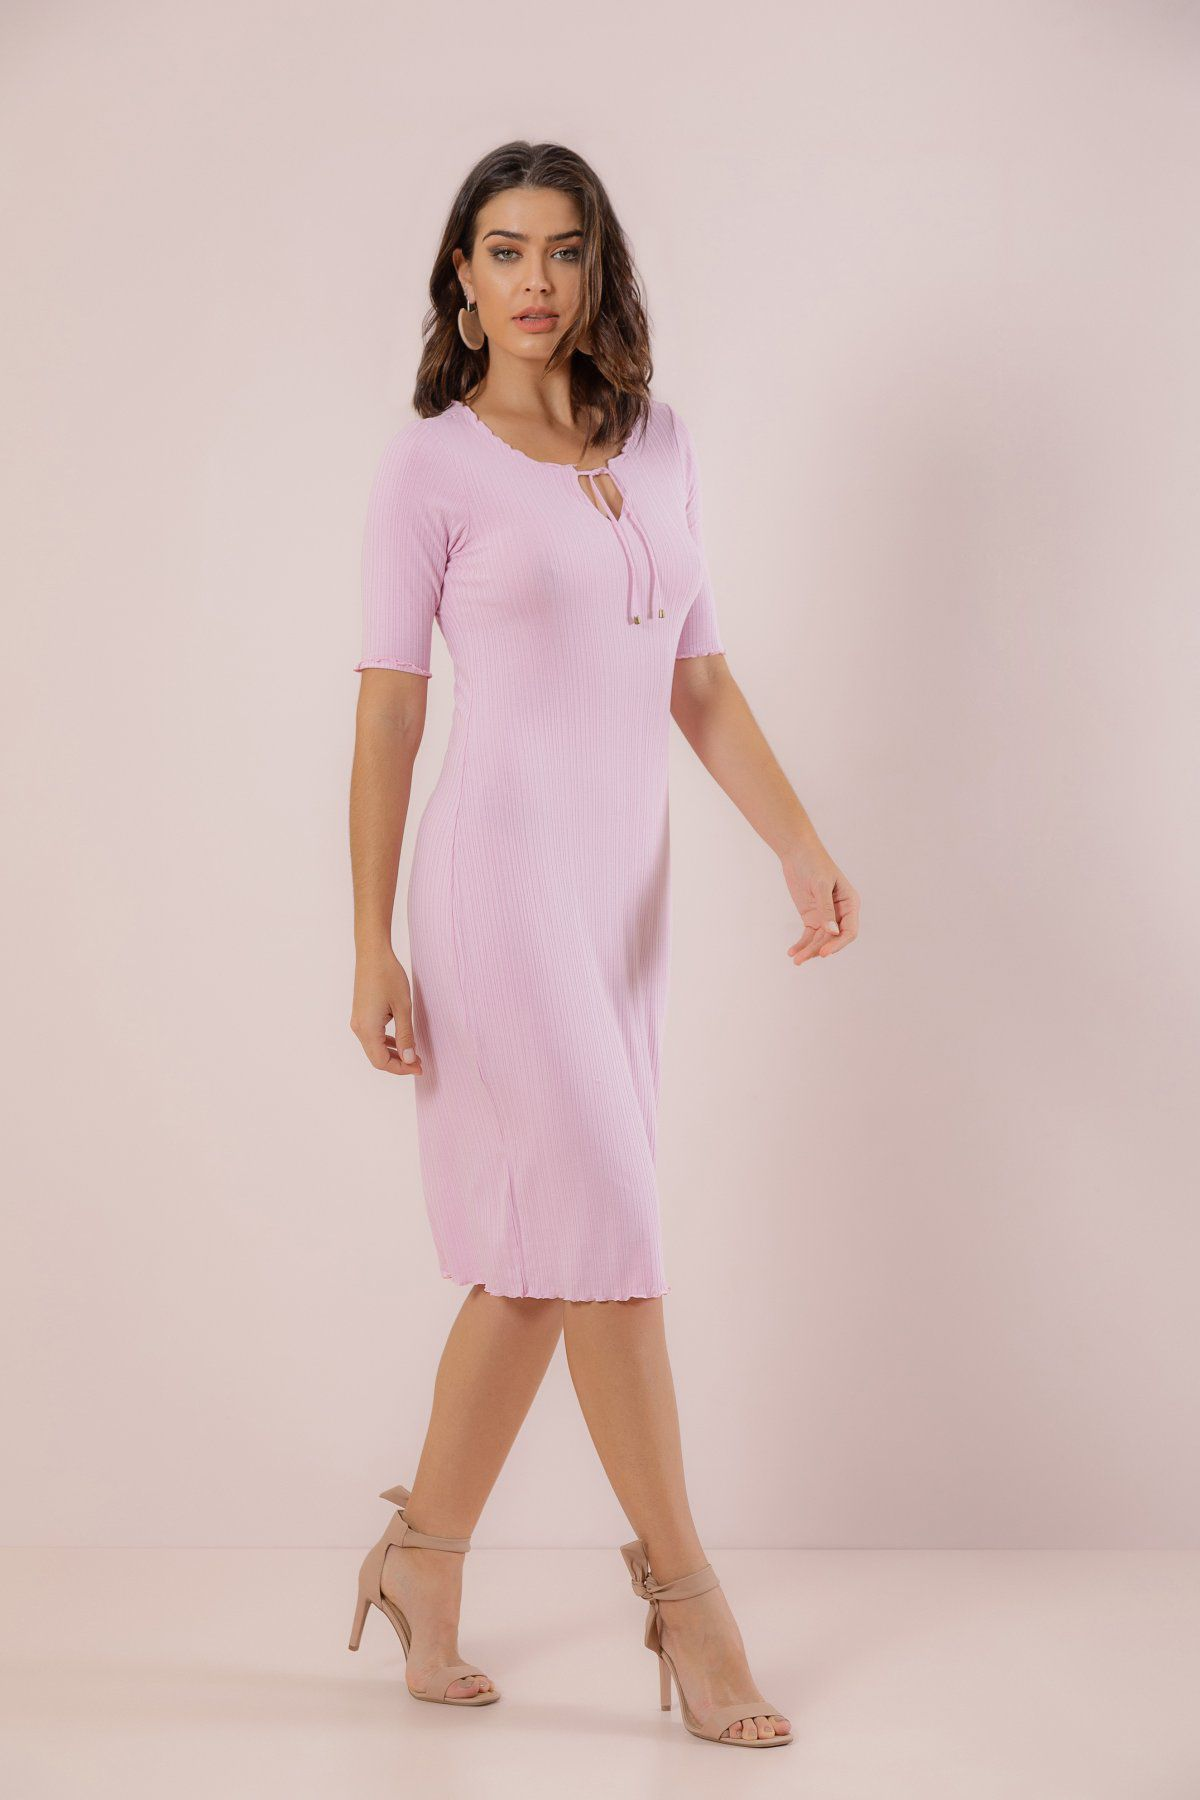 Vestido Midi New Canelado Tracy